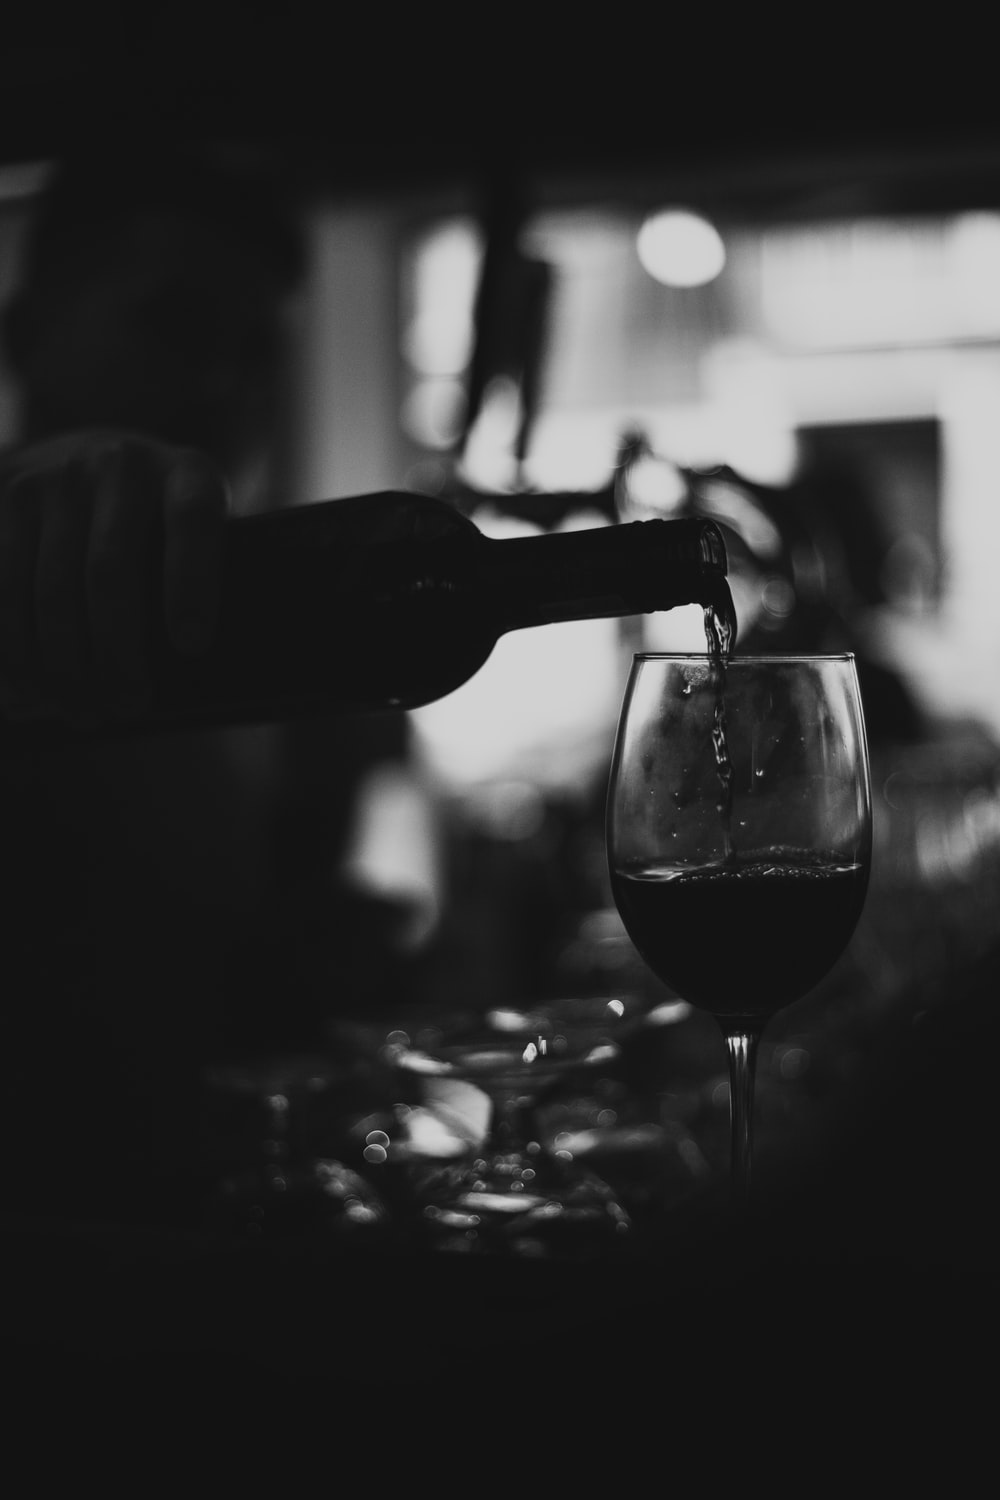 grayscale photo of person pouring wine on clear wine glass